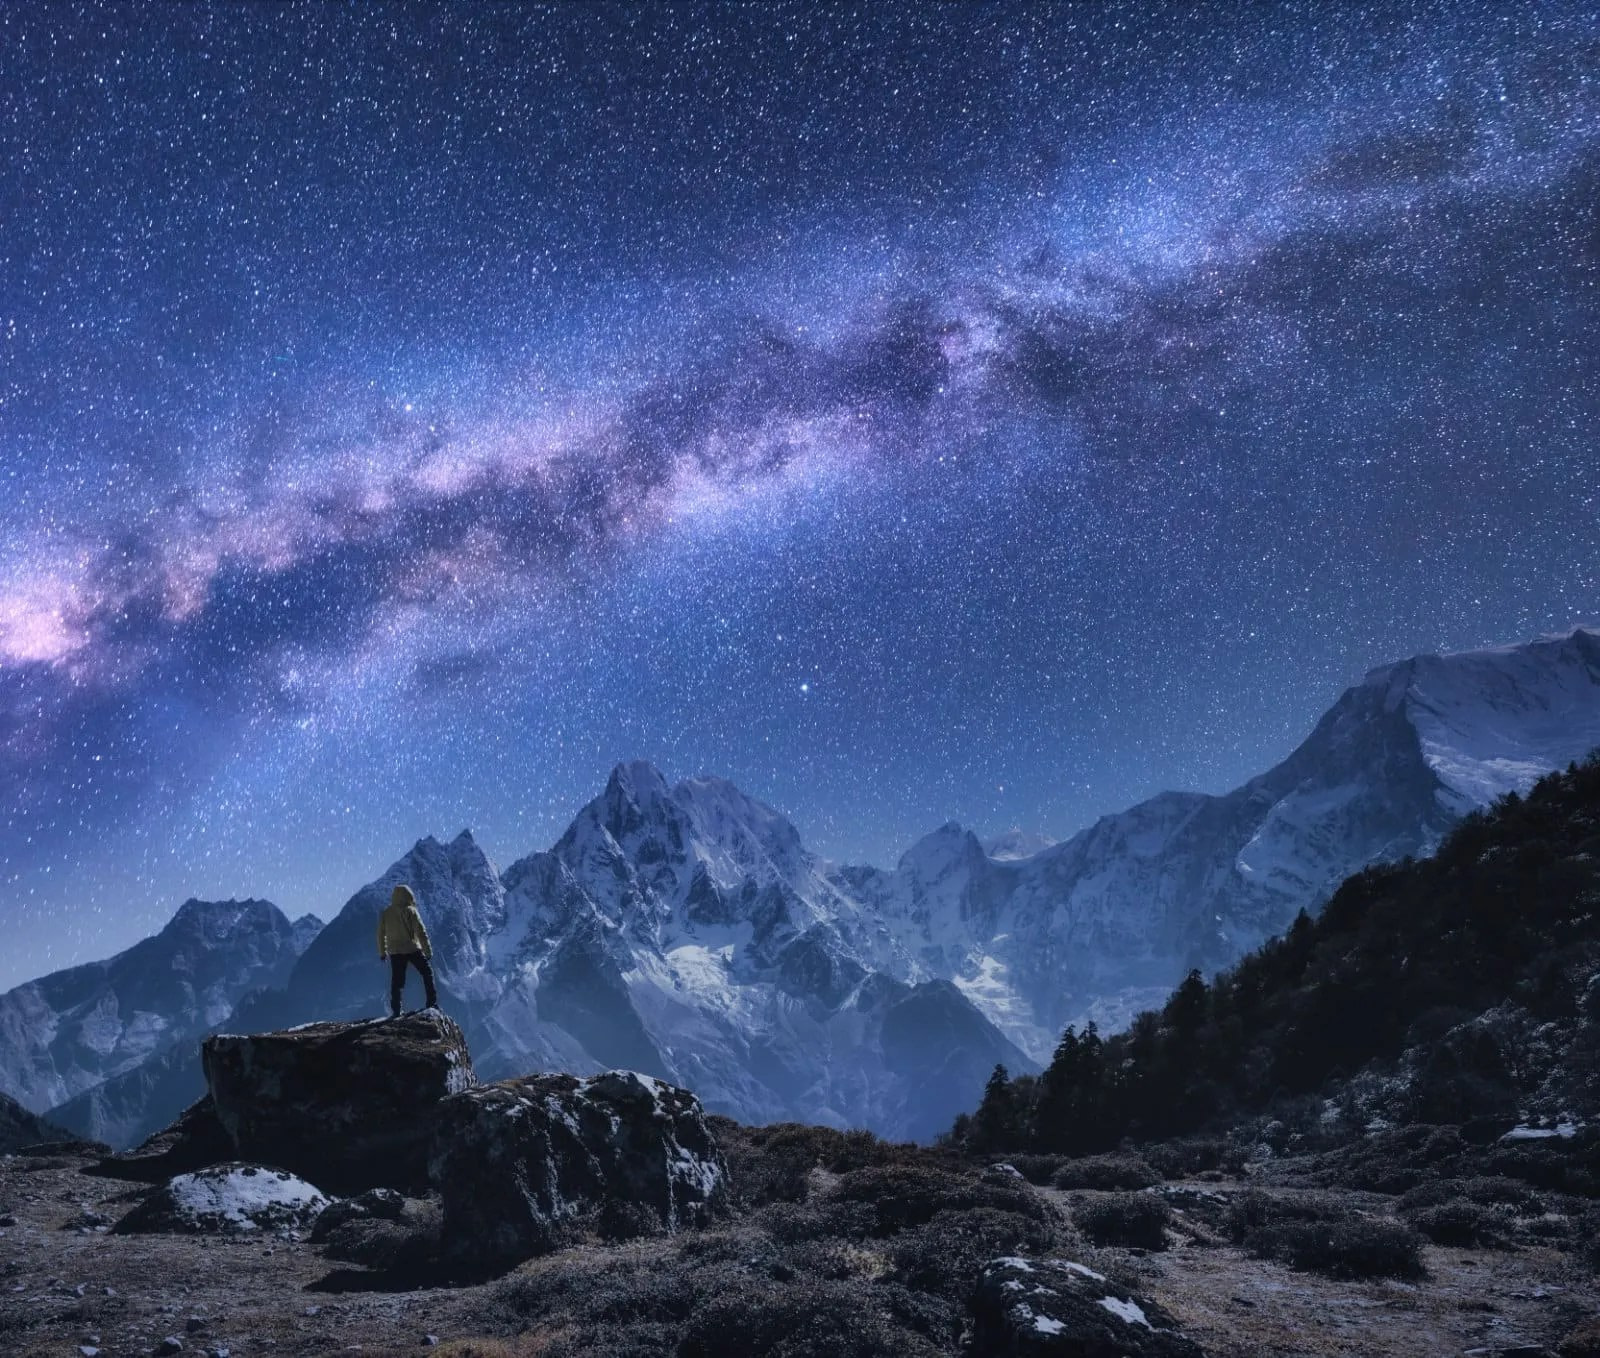 Adventurer under the stars, finding themselves in the healing meditation of being awed by a moment in time.